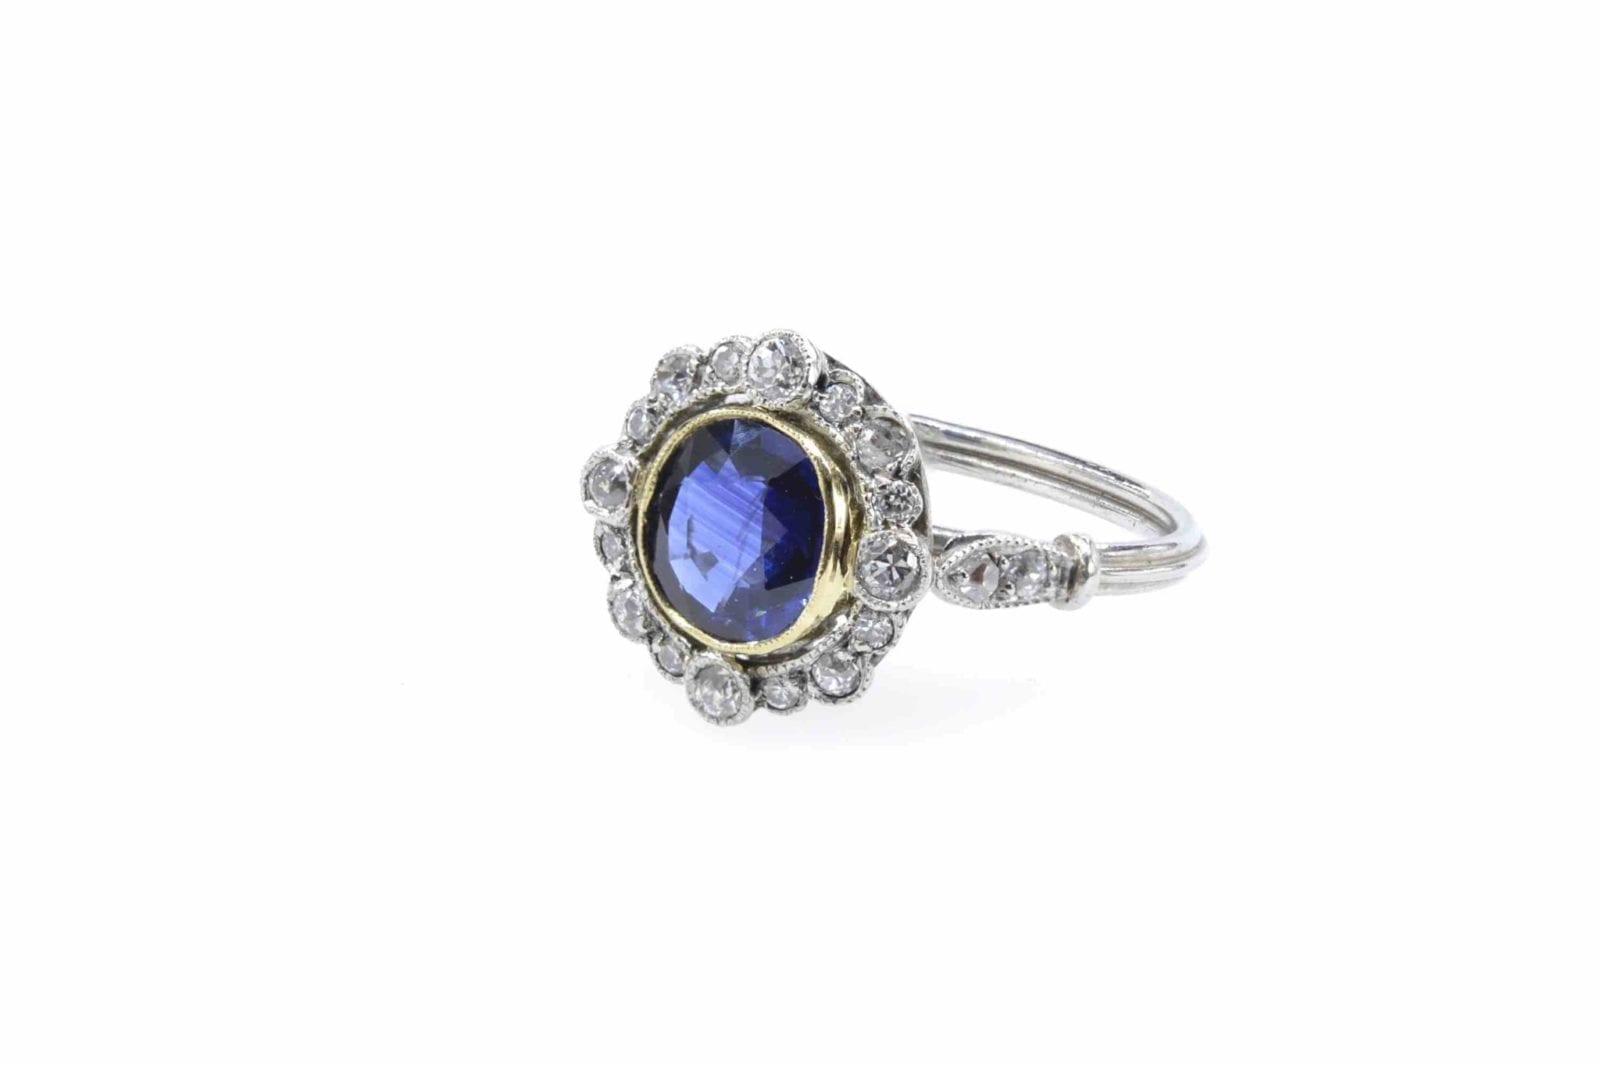 Bague saphir et diamants en platine